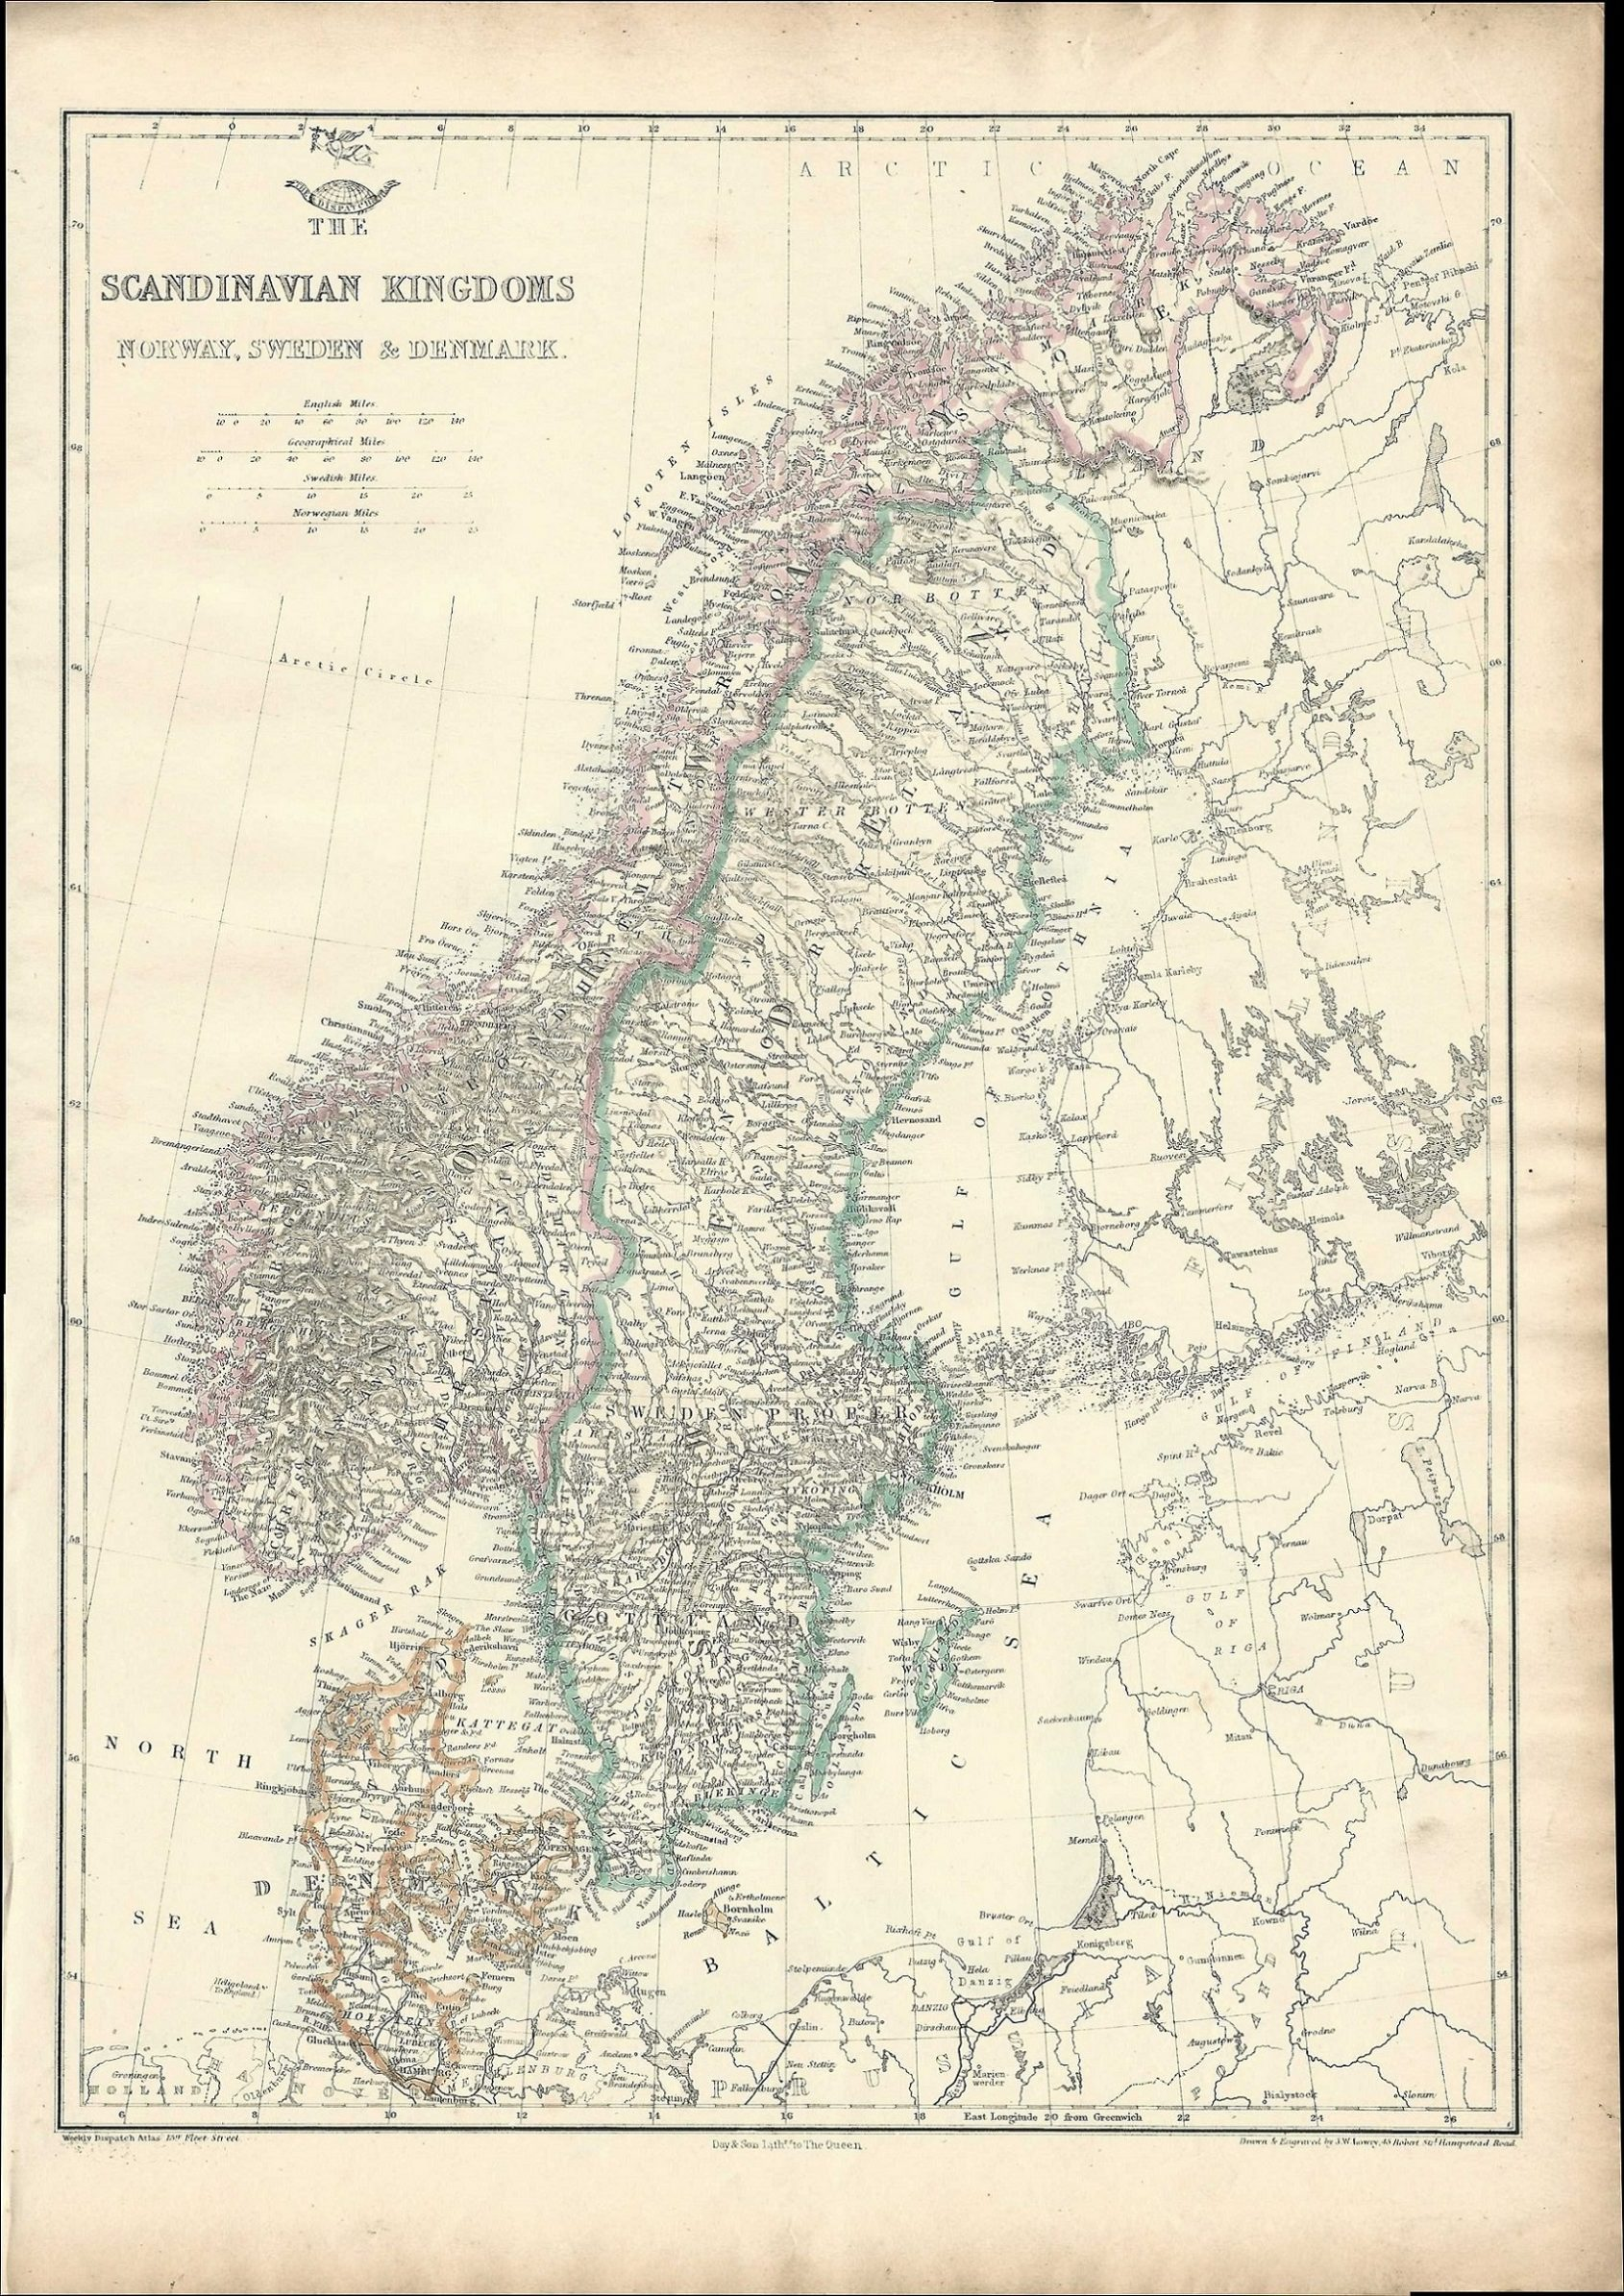 Scandinavia antique map Weekly Dispatch Album 1863 - Frontispiece